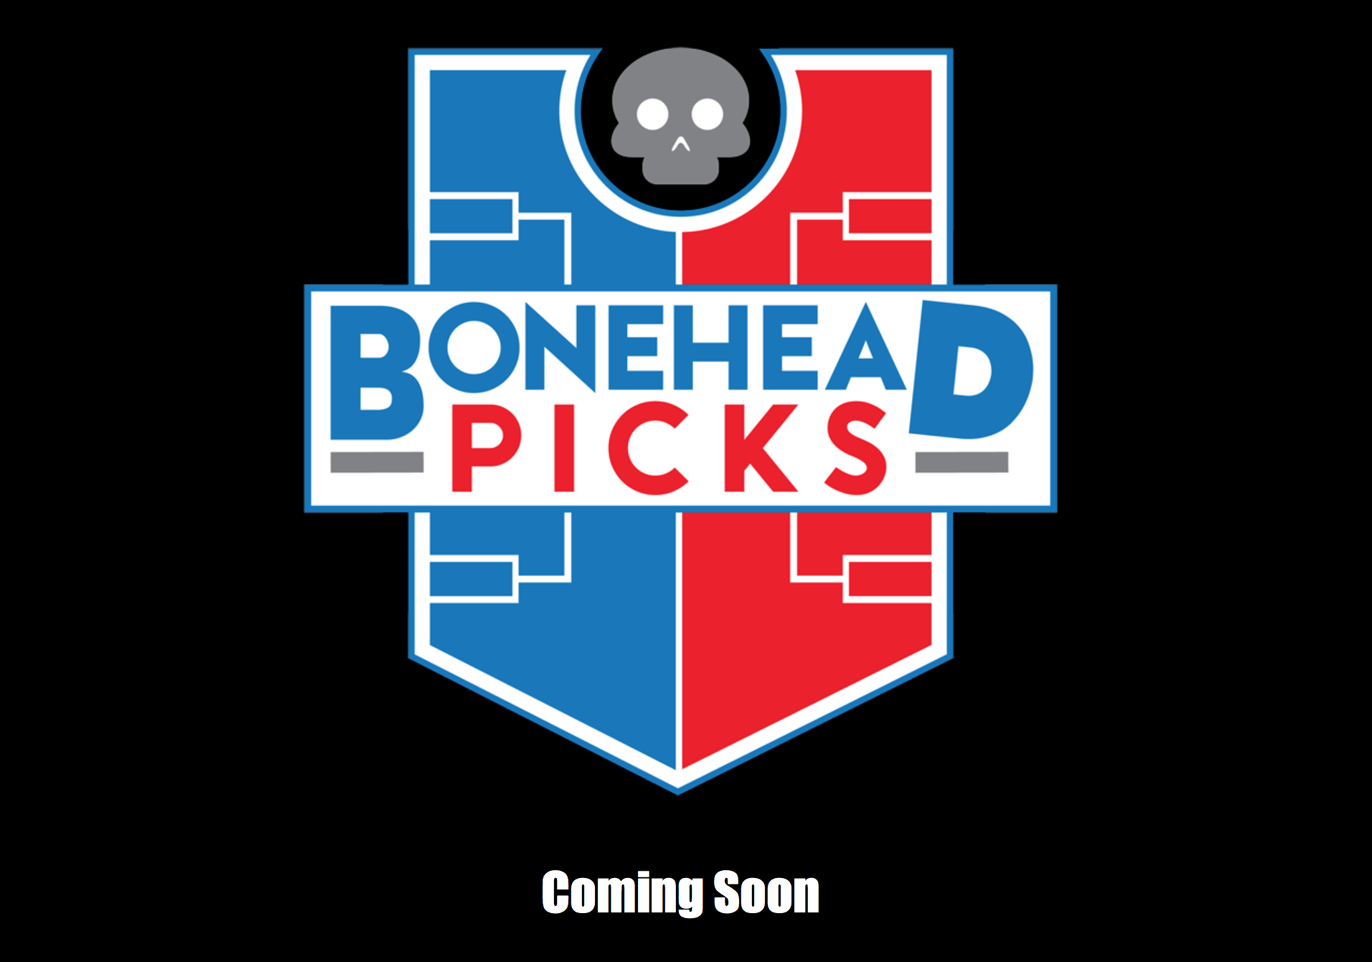 Bonehead_Picks